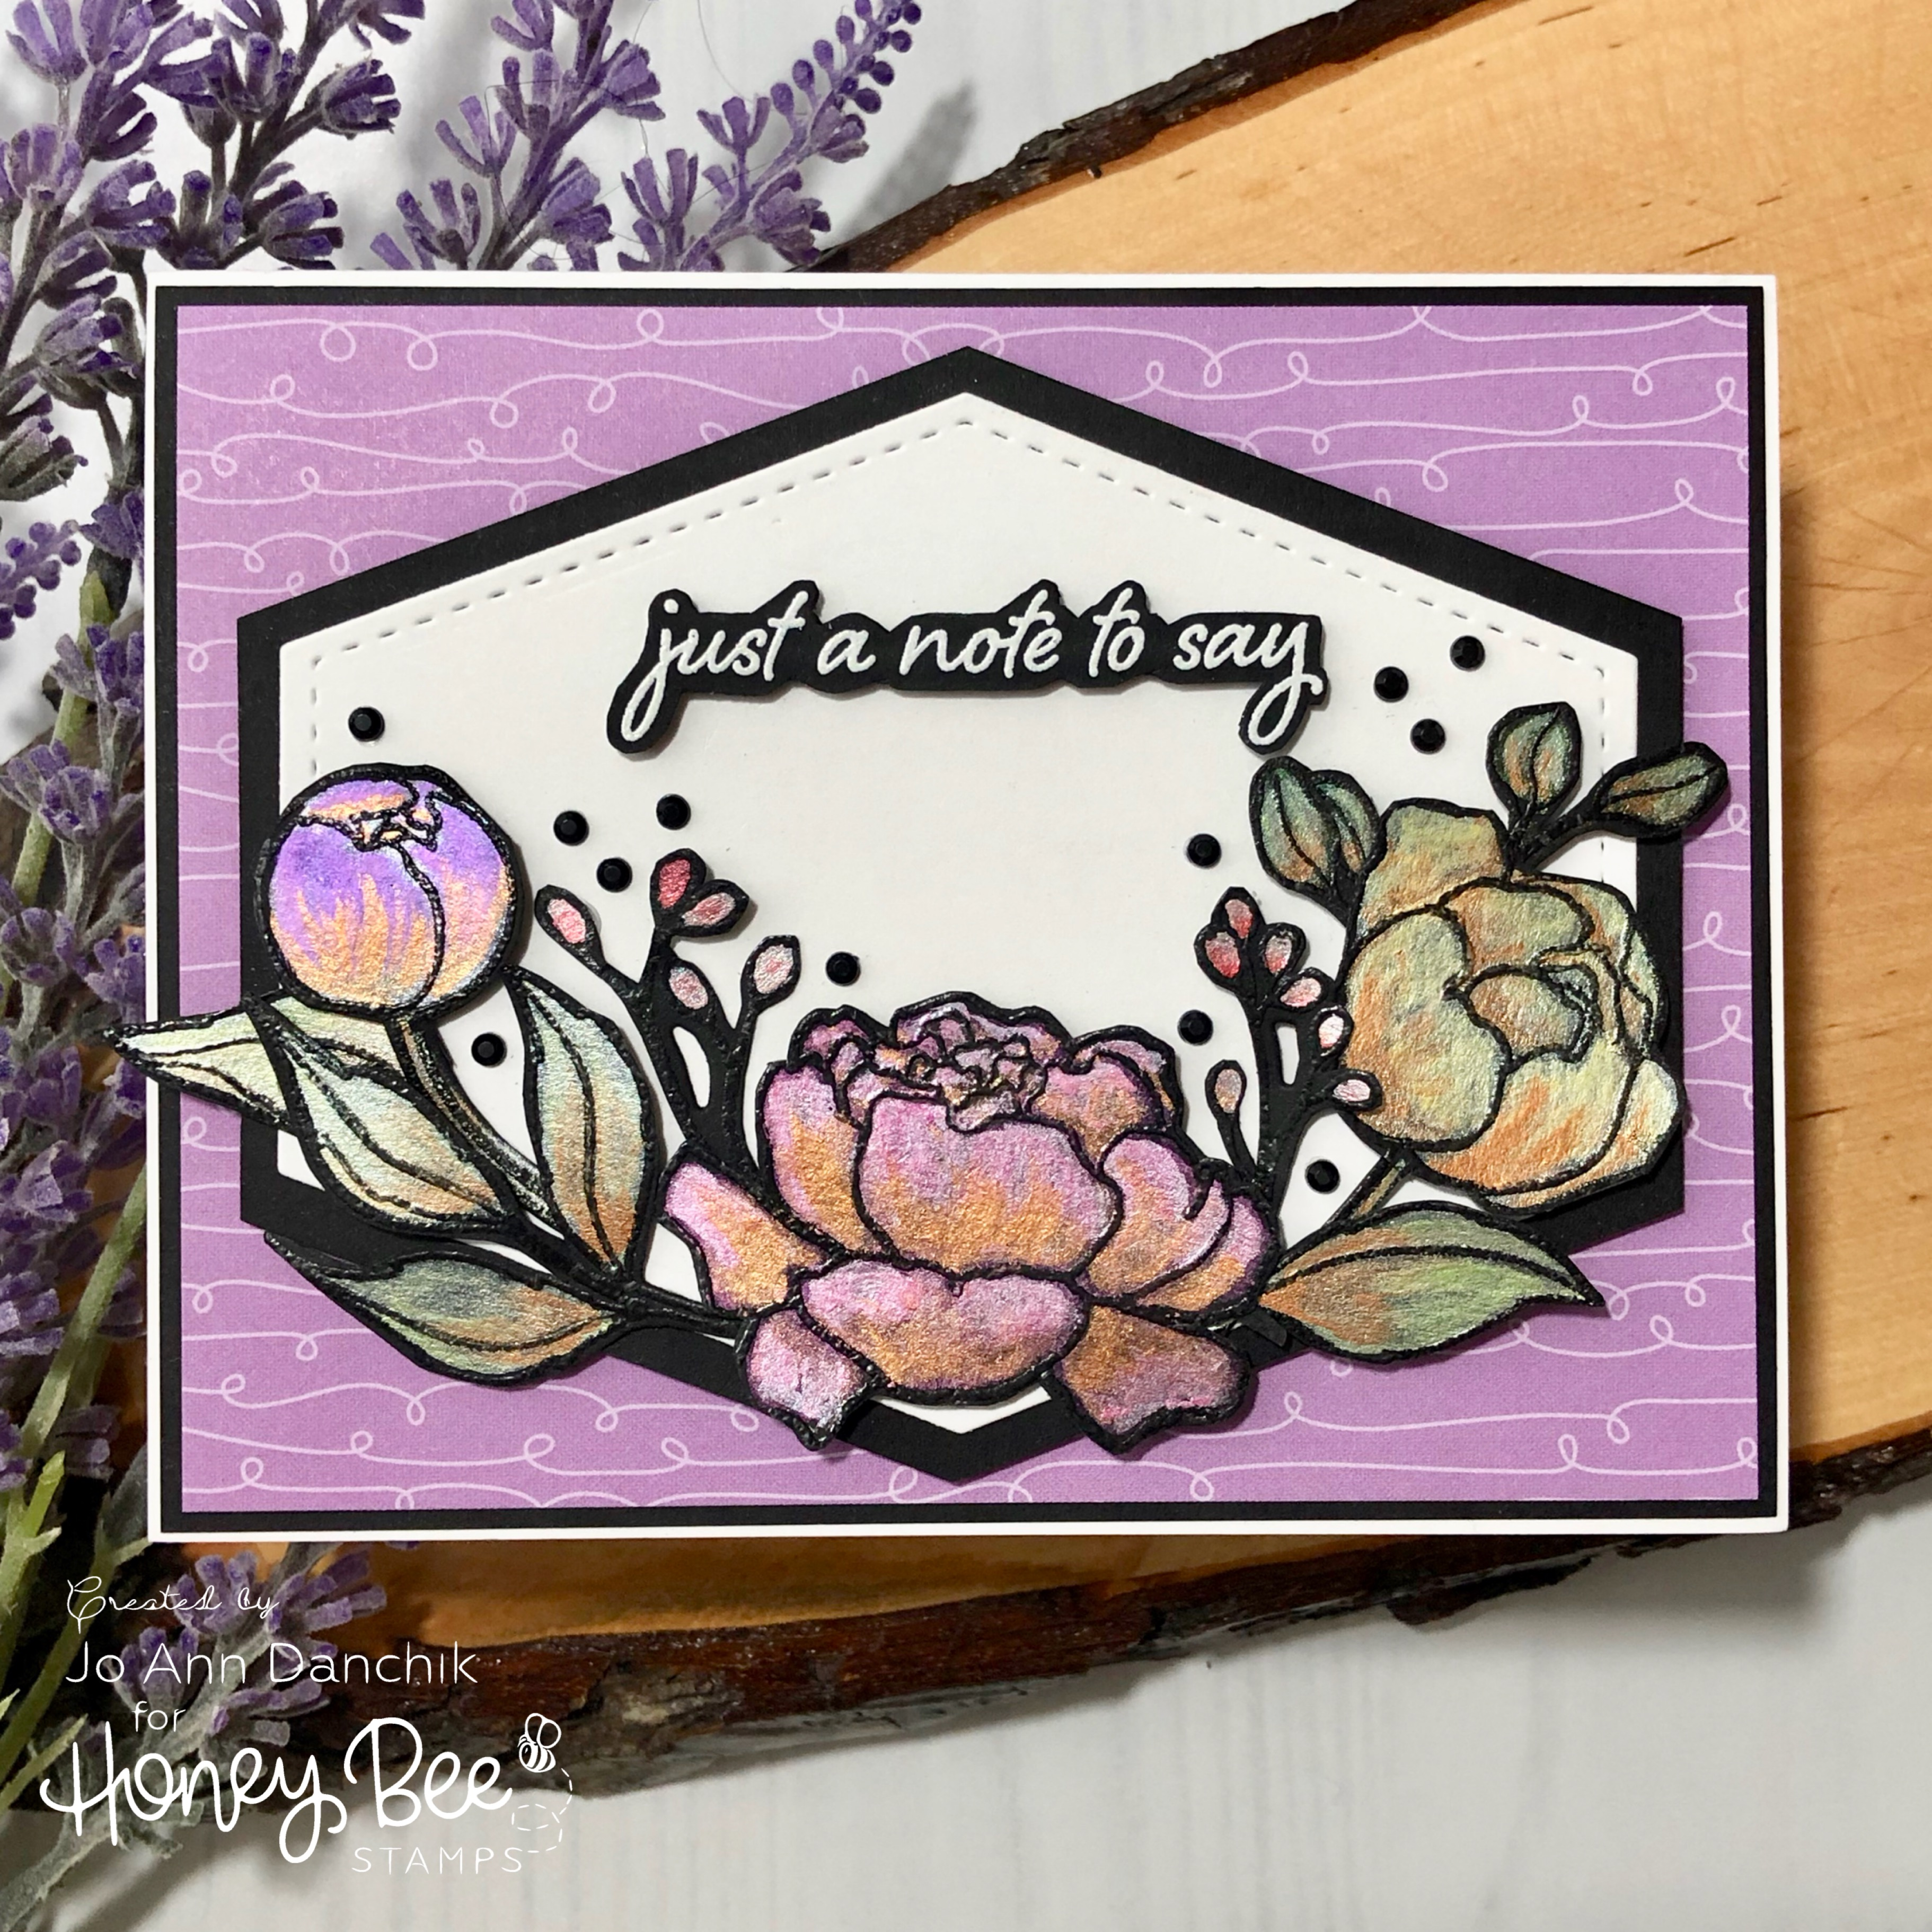 Creative Sundays With Jo Ann: Just A Note To Say